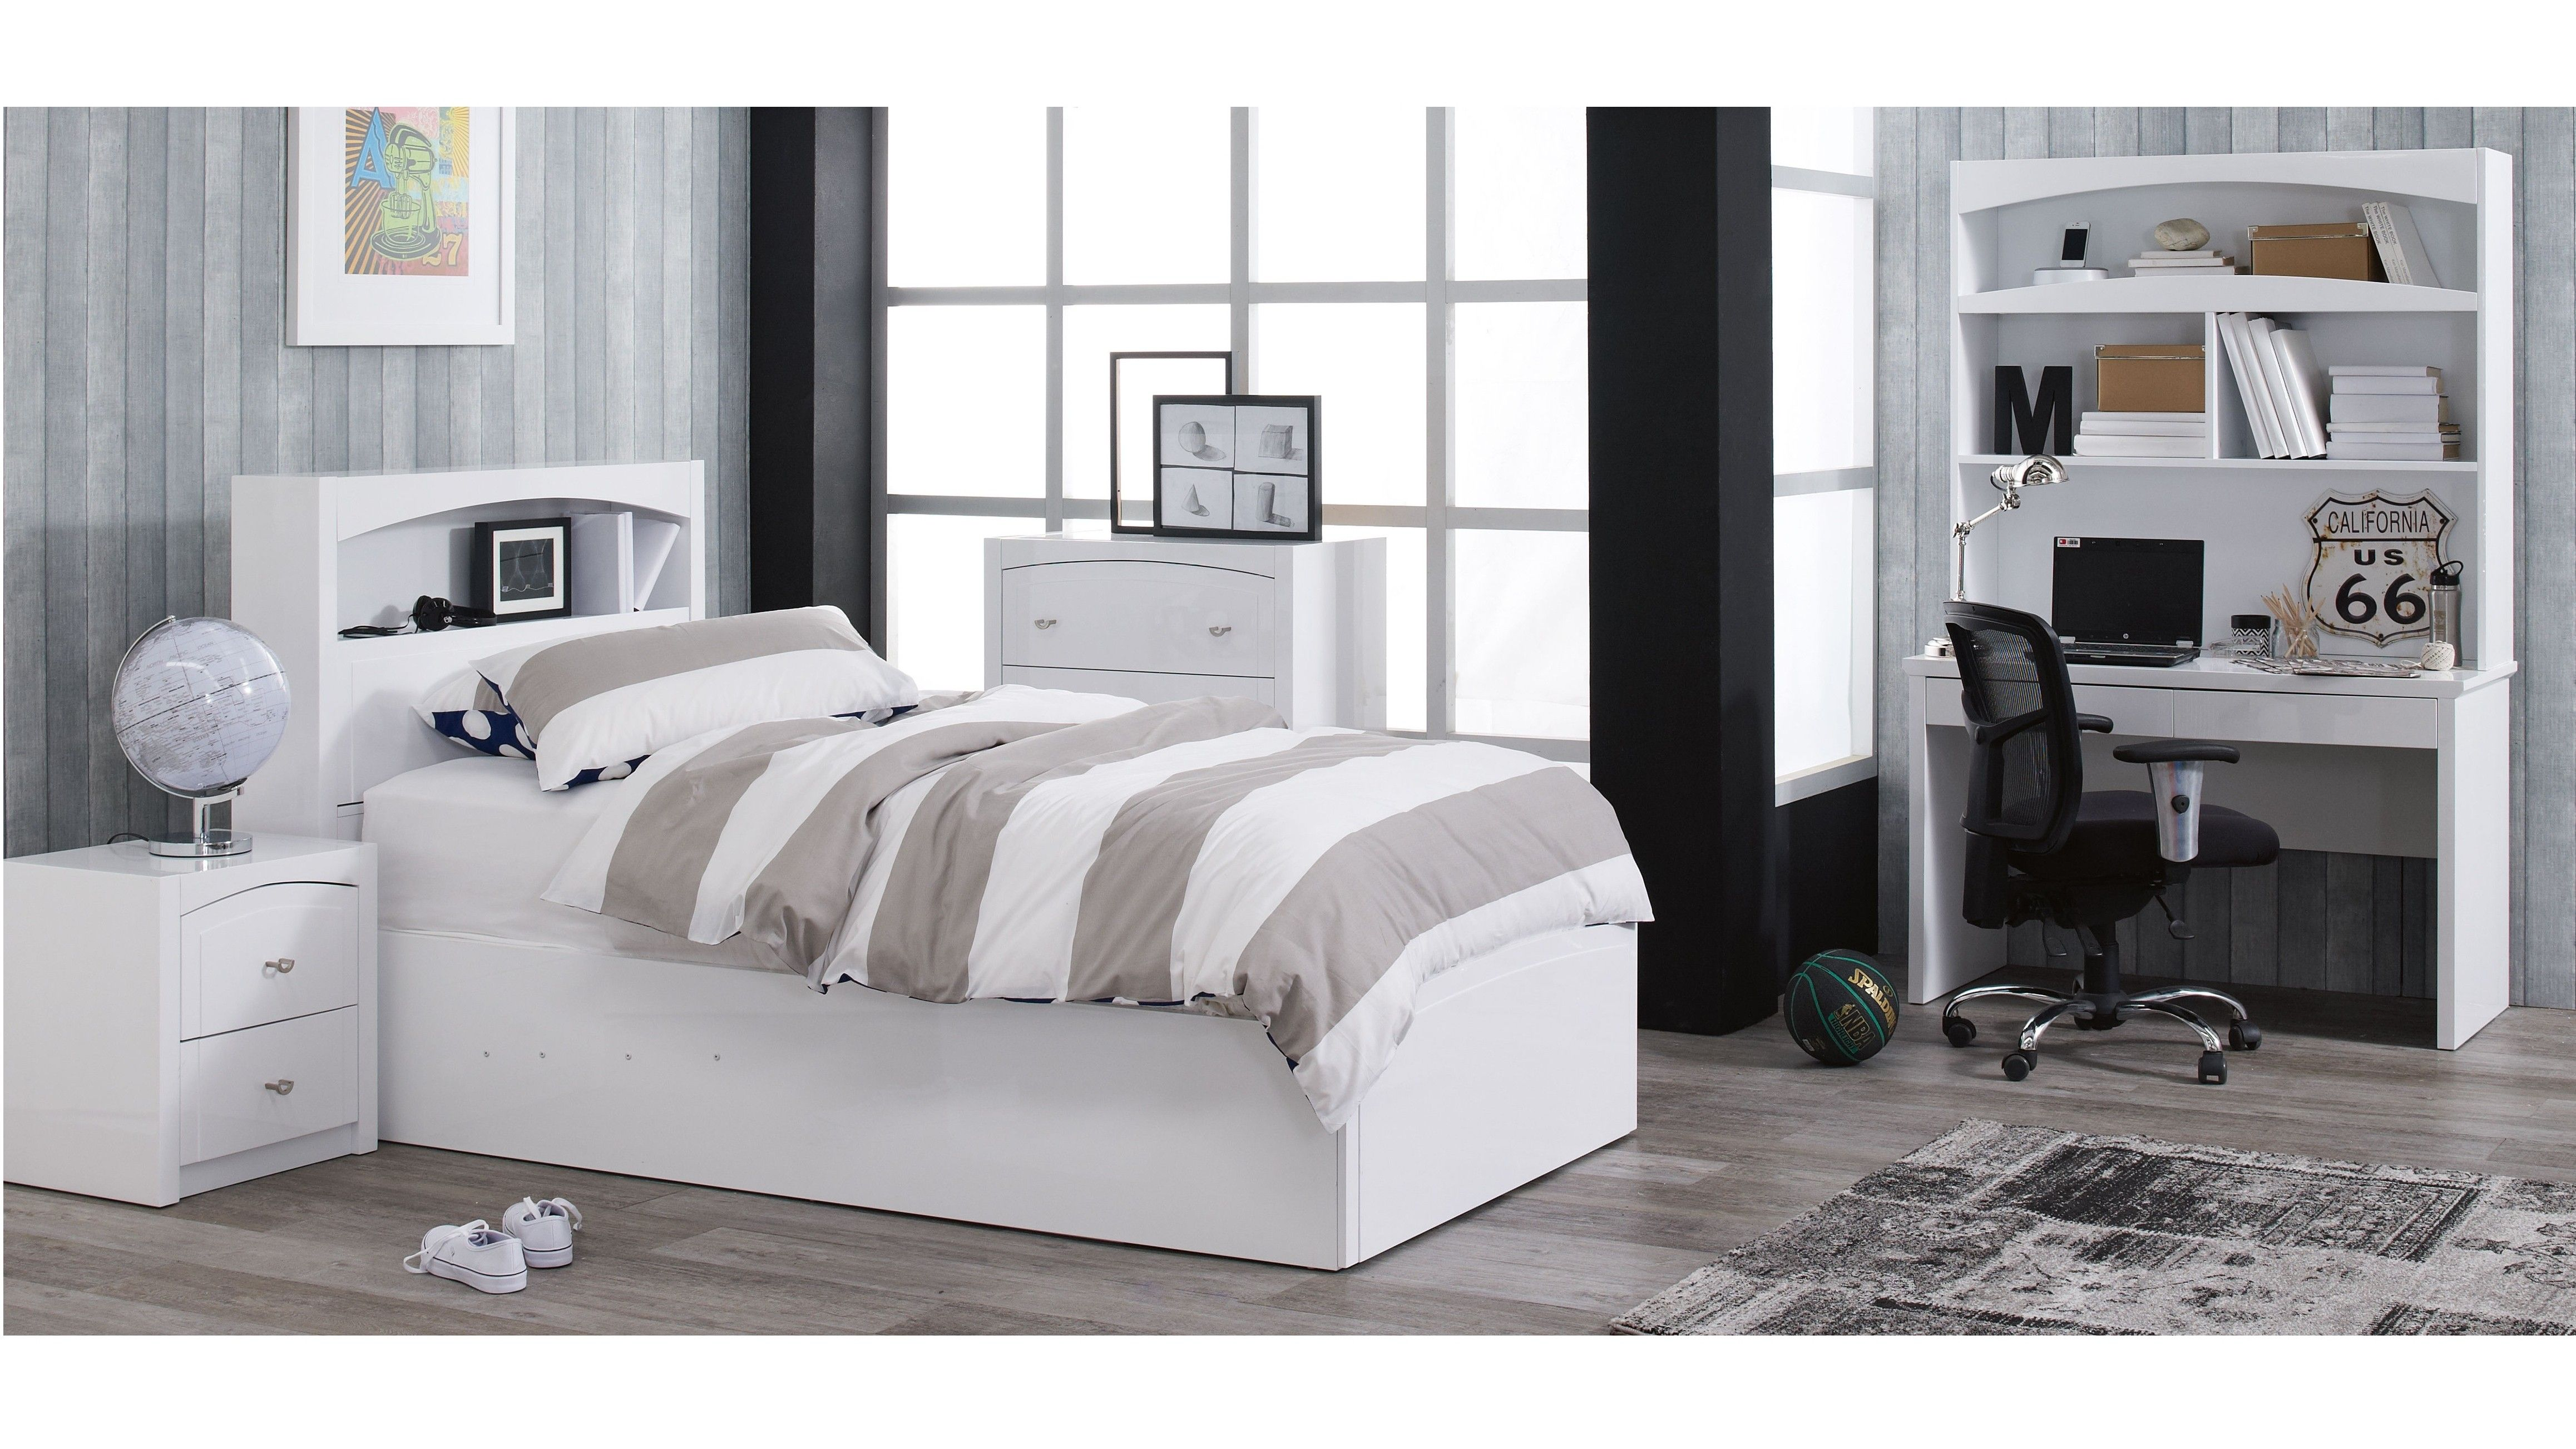 Single Bed Bedroom Combining Contemporary Style With Practical Features The Maxi